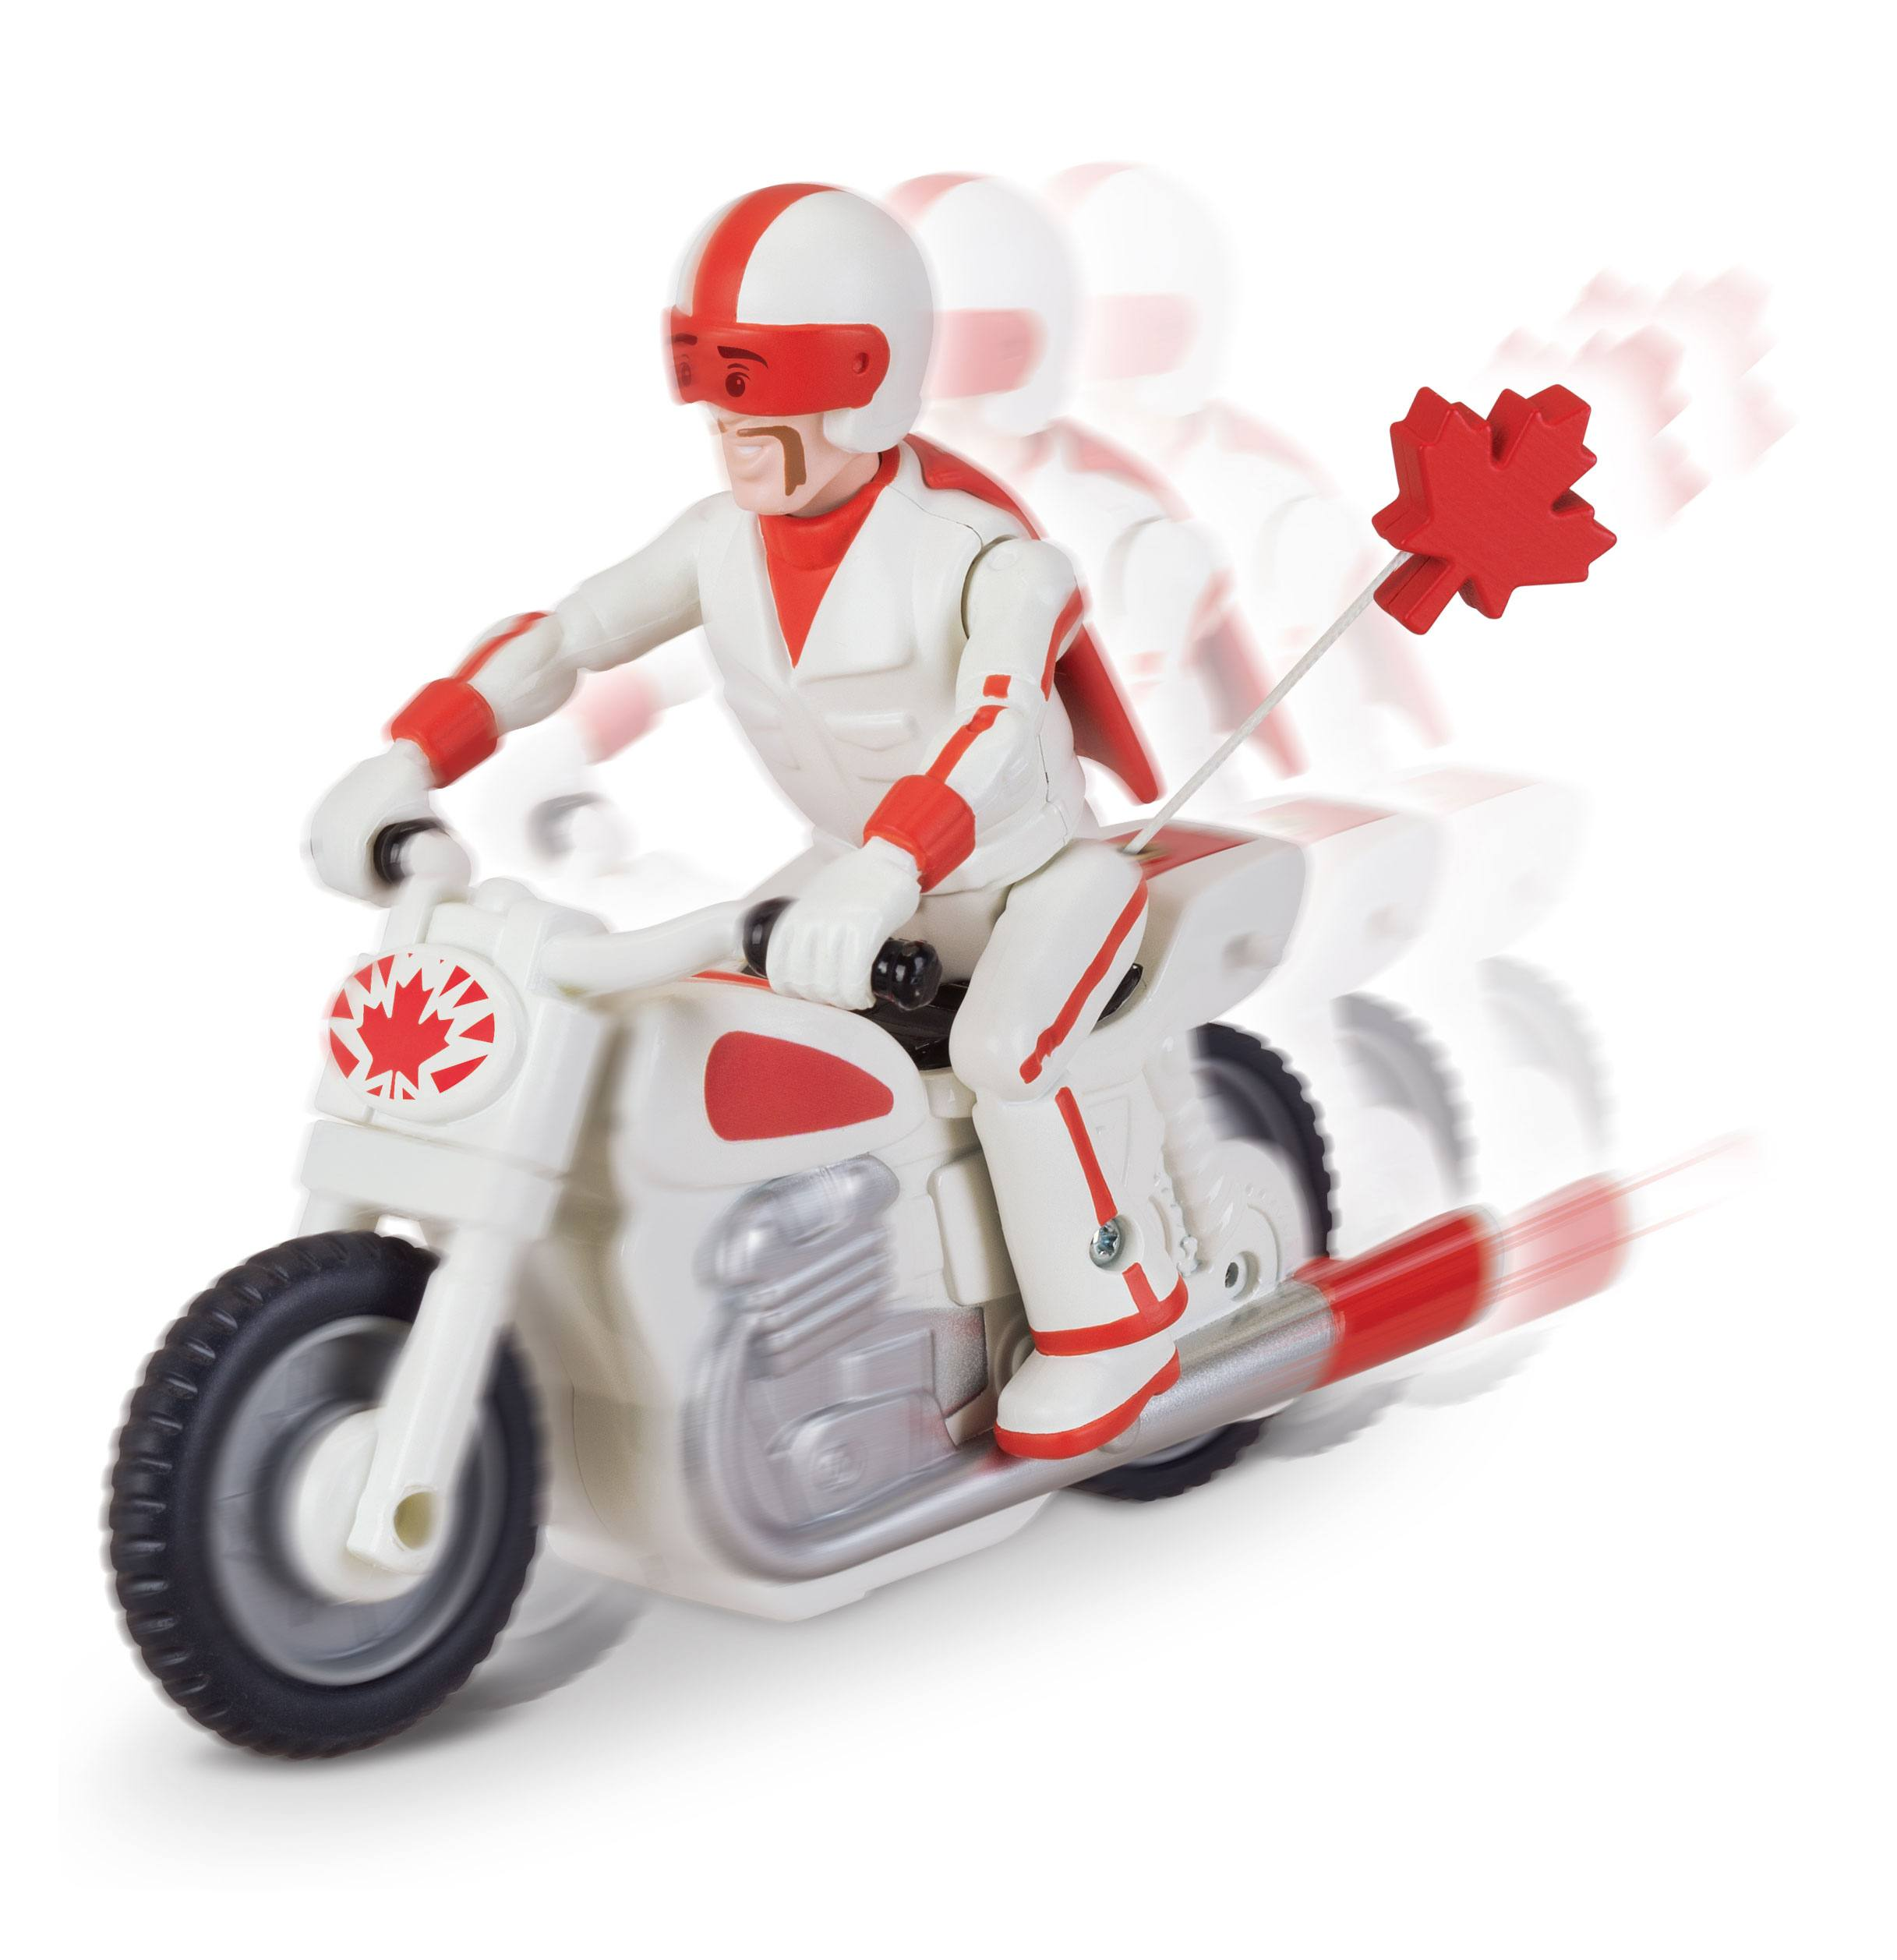 Toy Story 4 Pullback Figure Duke Caboom with Motorcycle 10 cm - Animegami  Store